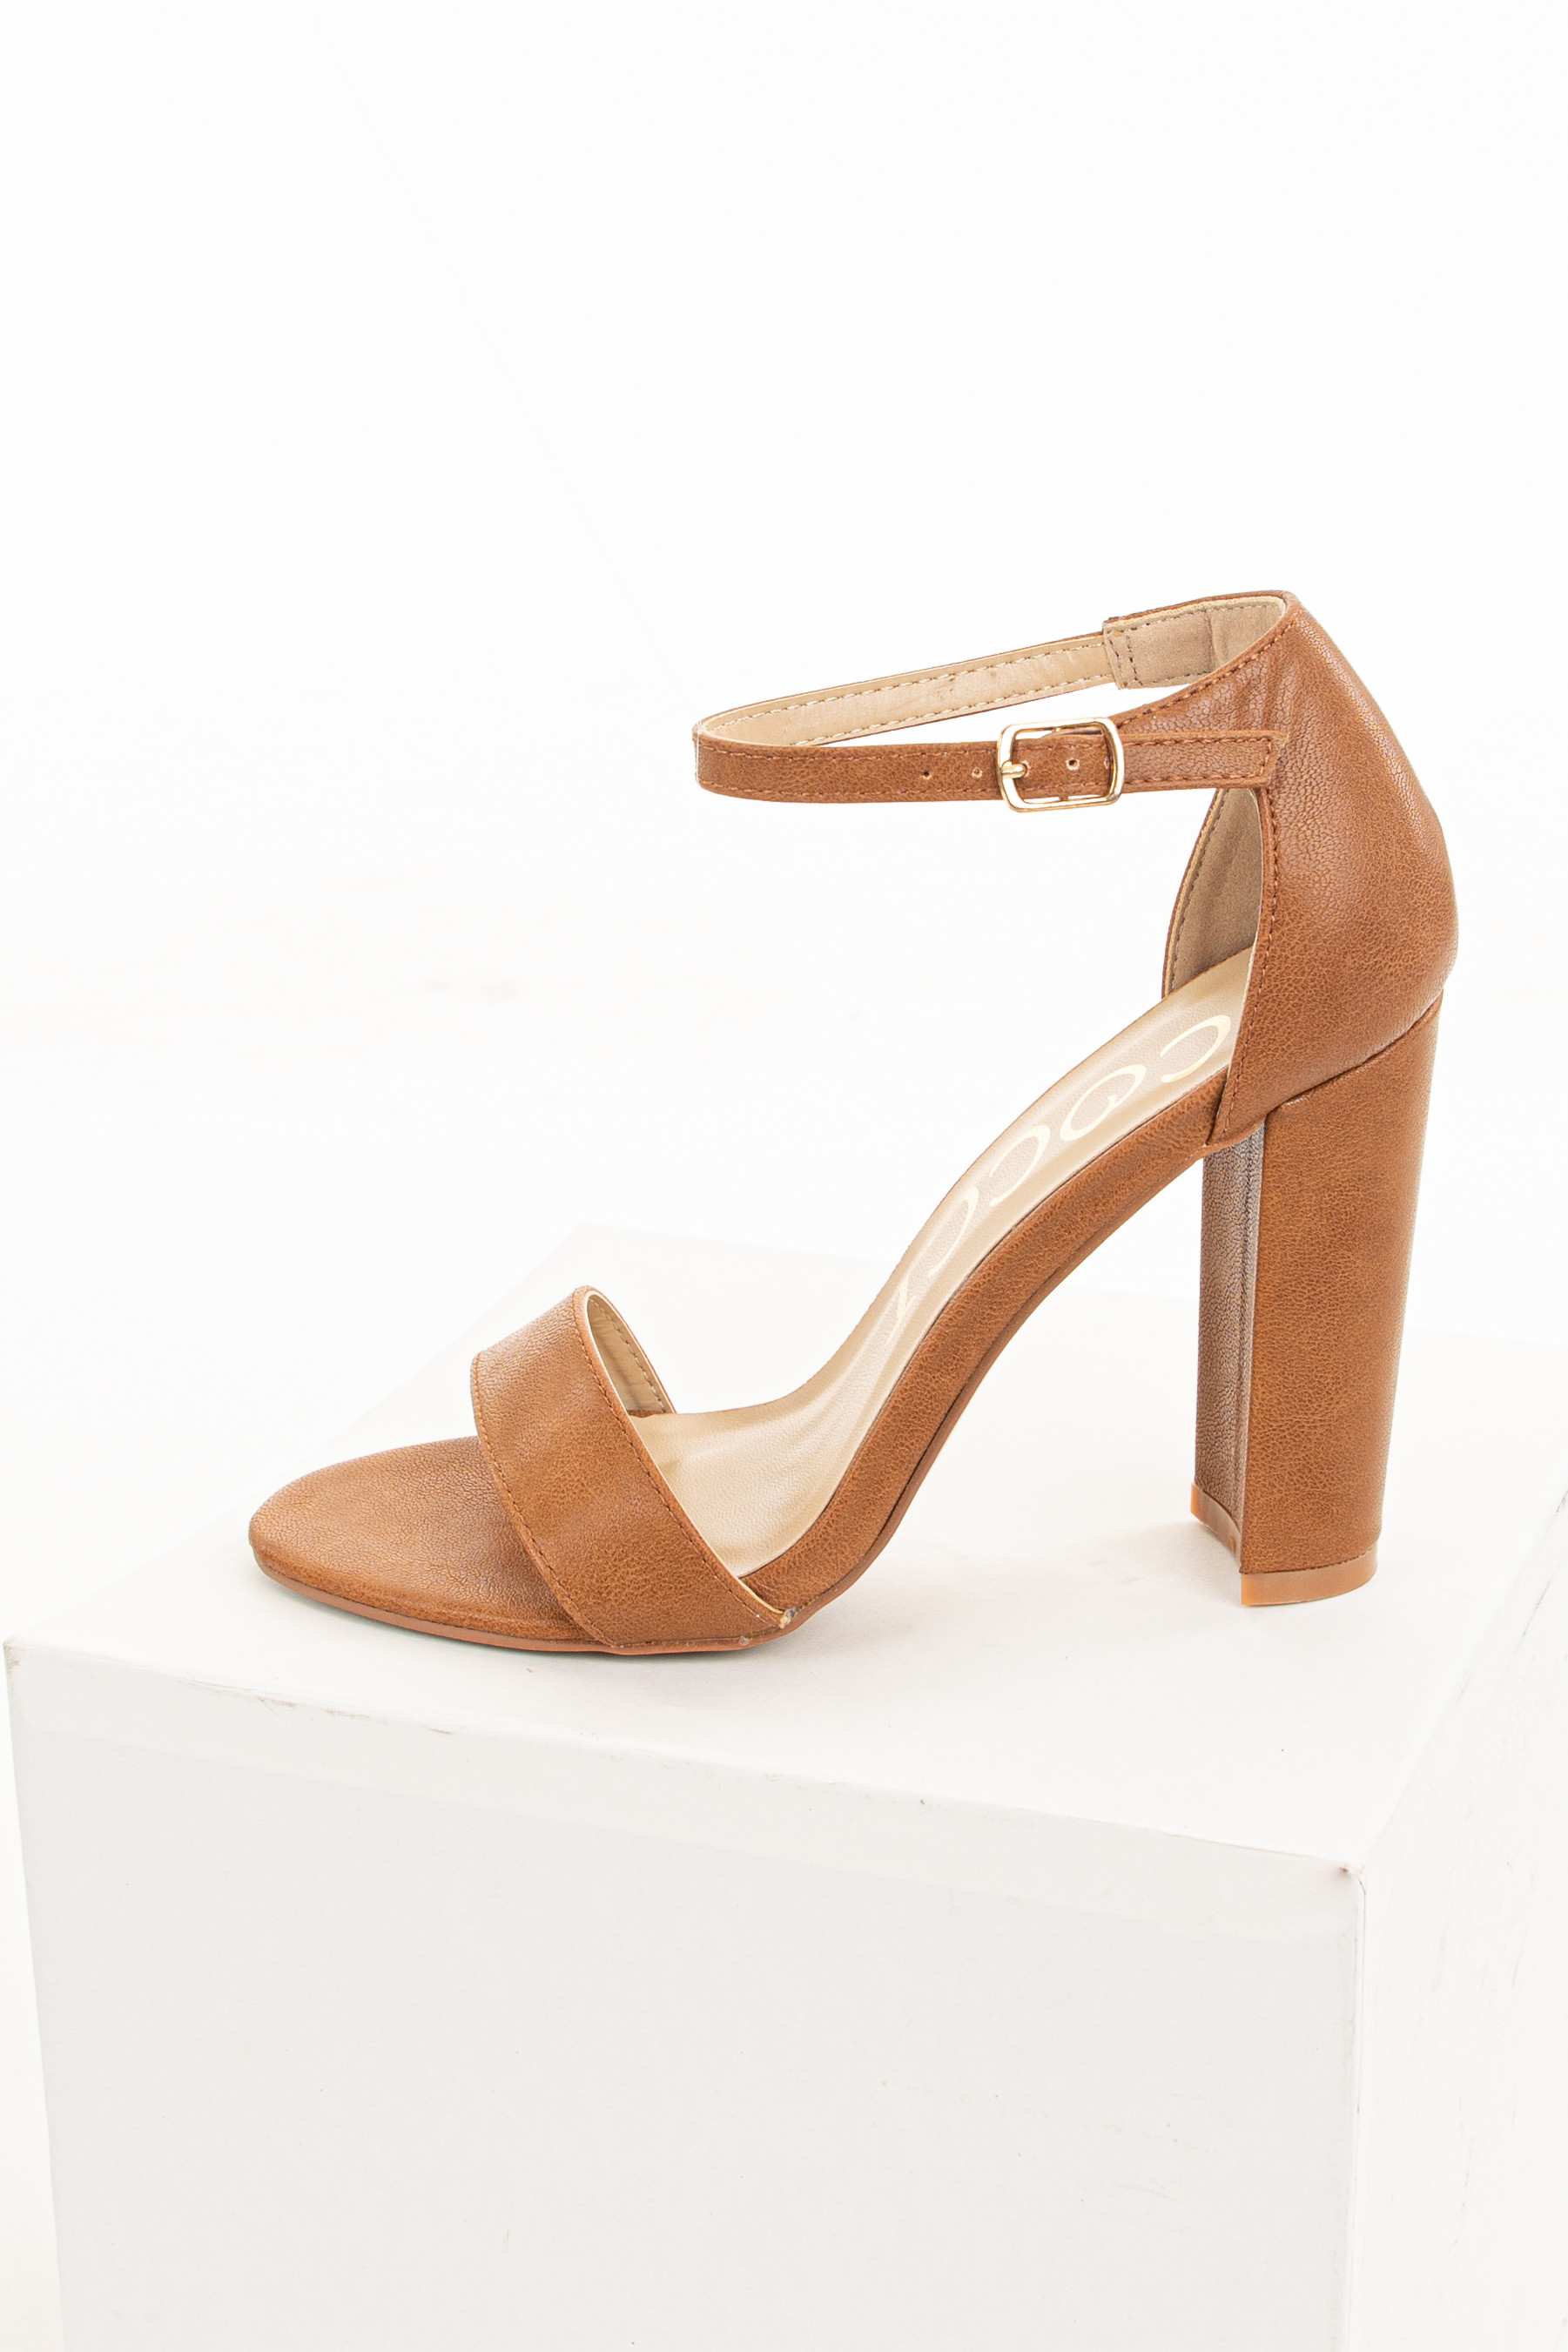 Cognac Faux Leather Heels with Ankle Strap and Buckle